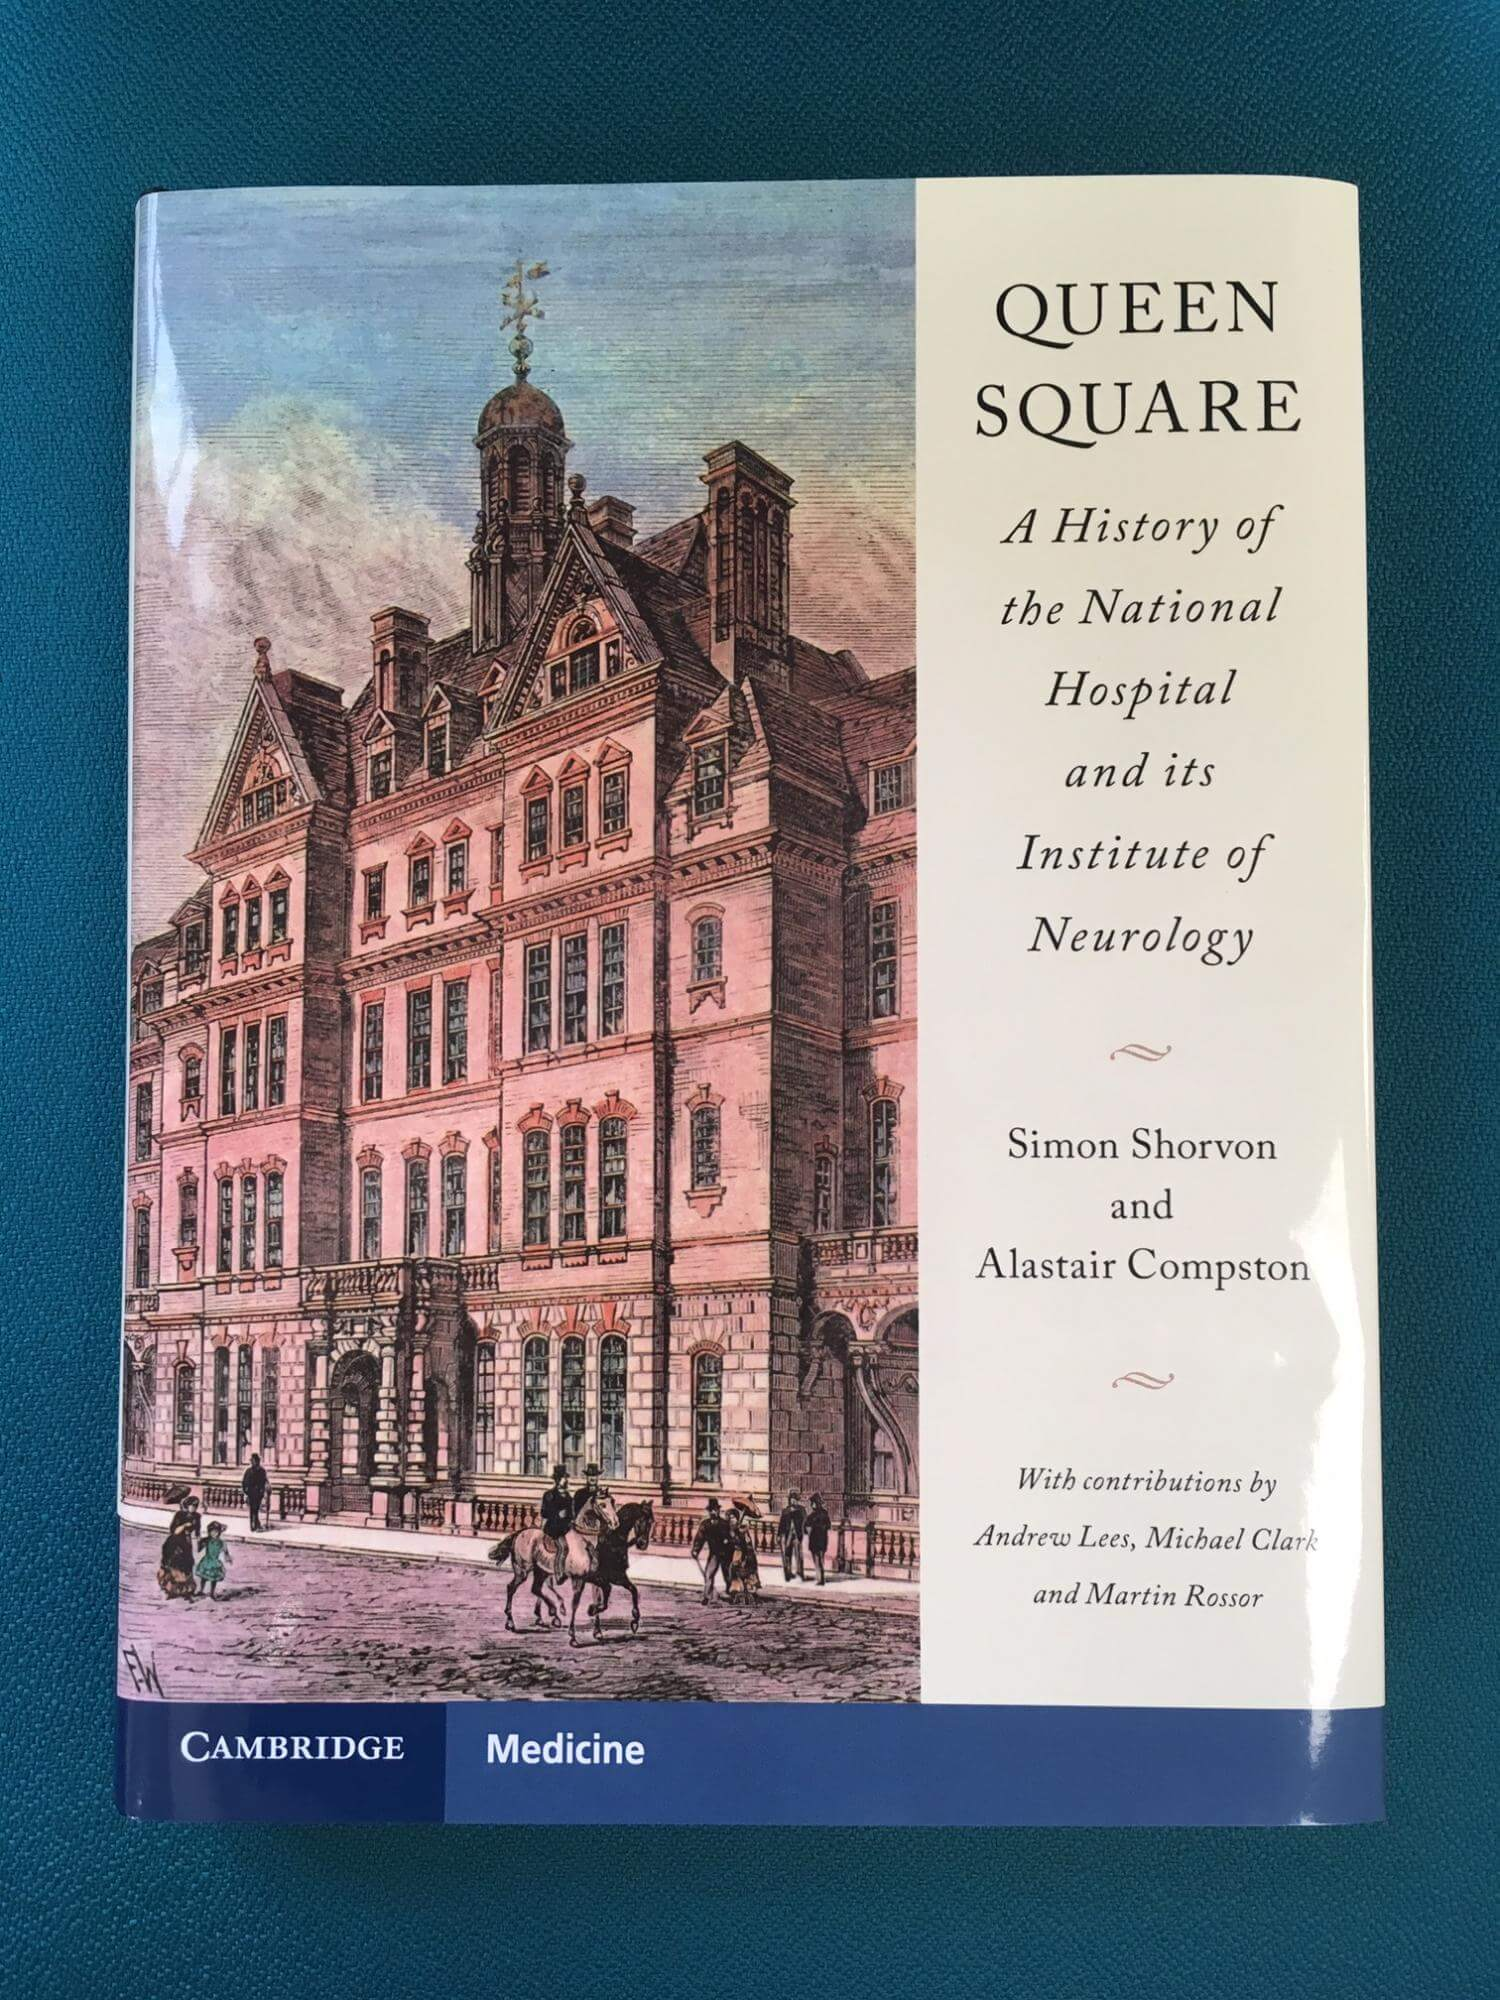 Queen Square history book